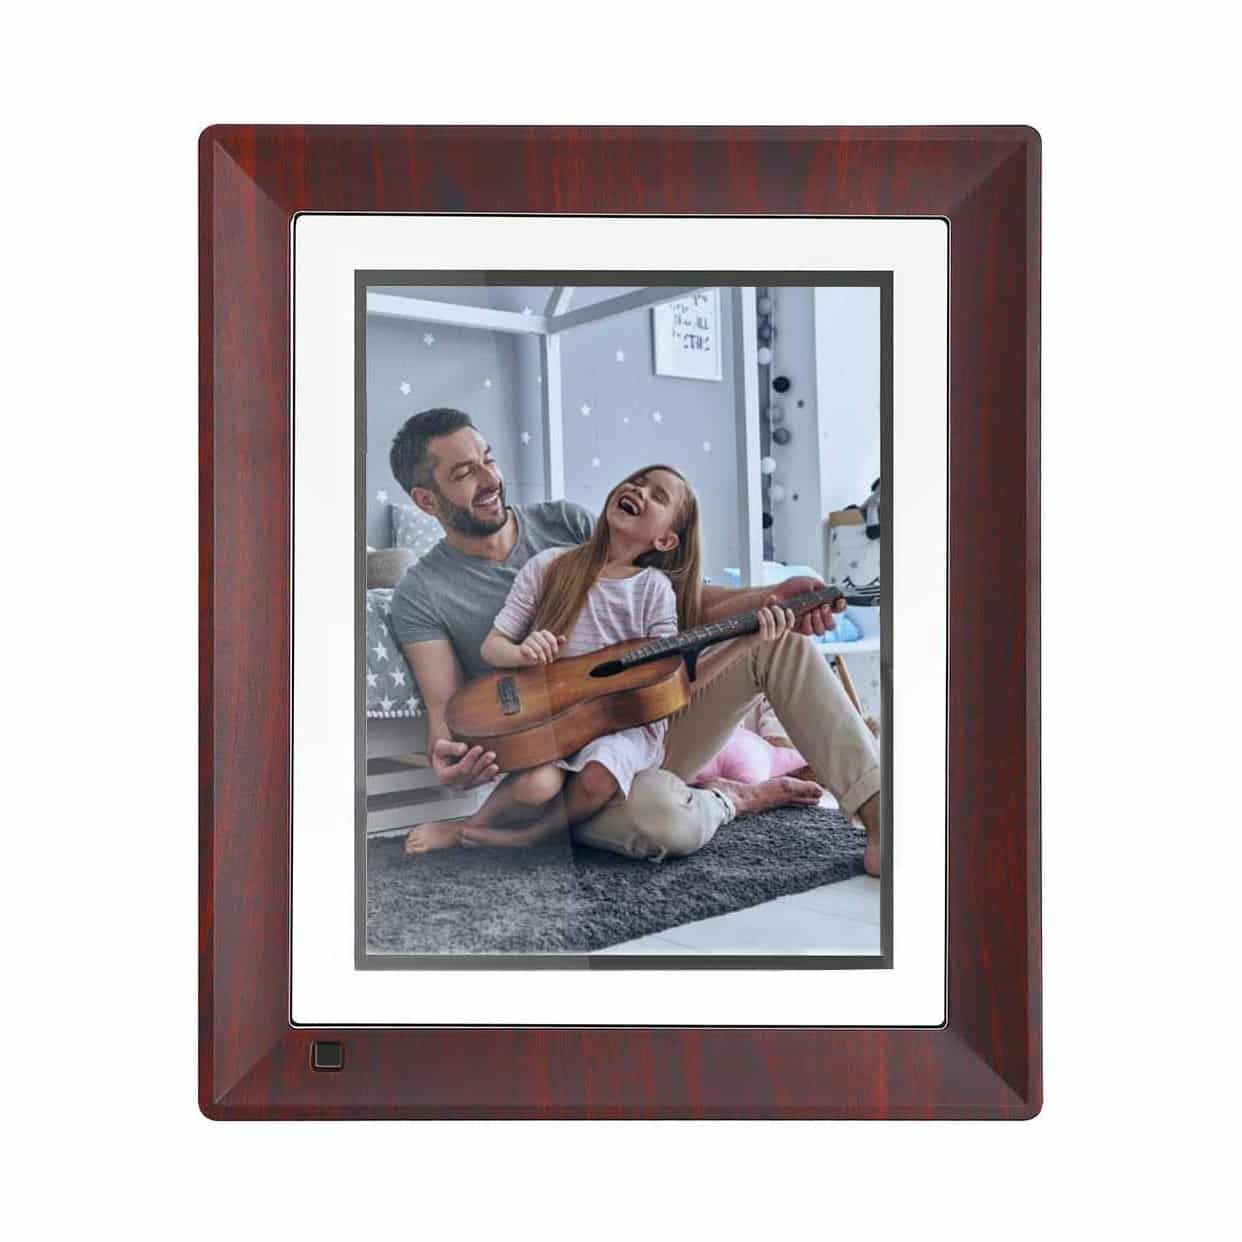 BSIMB Digital Picture Frame